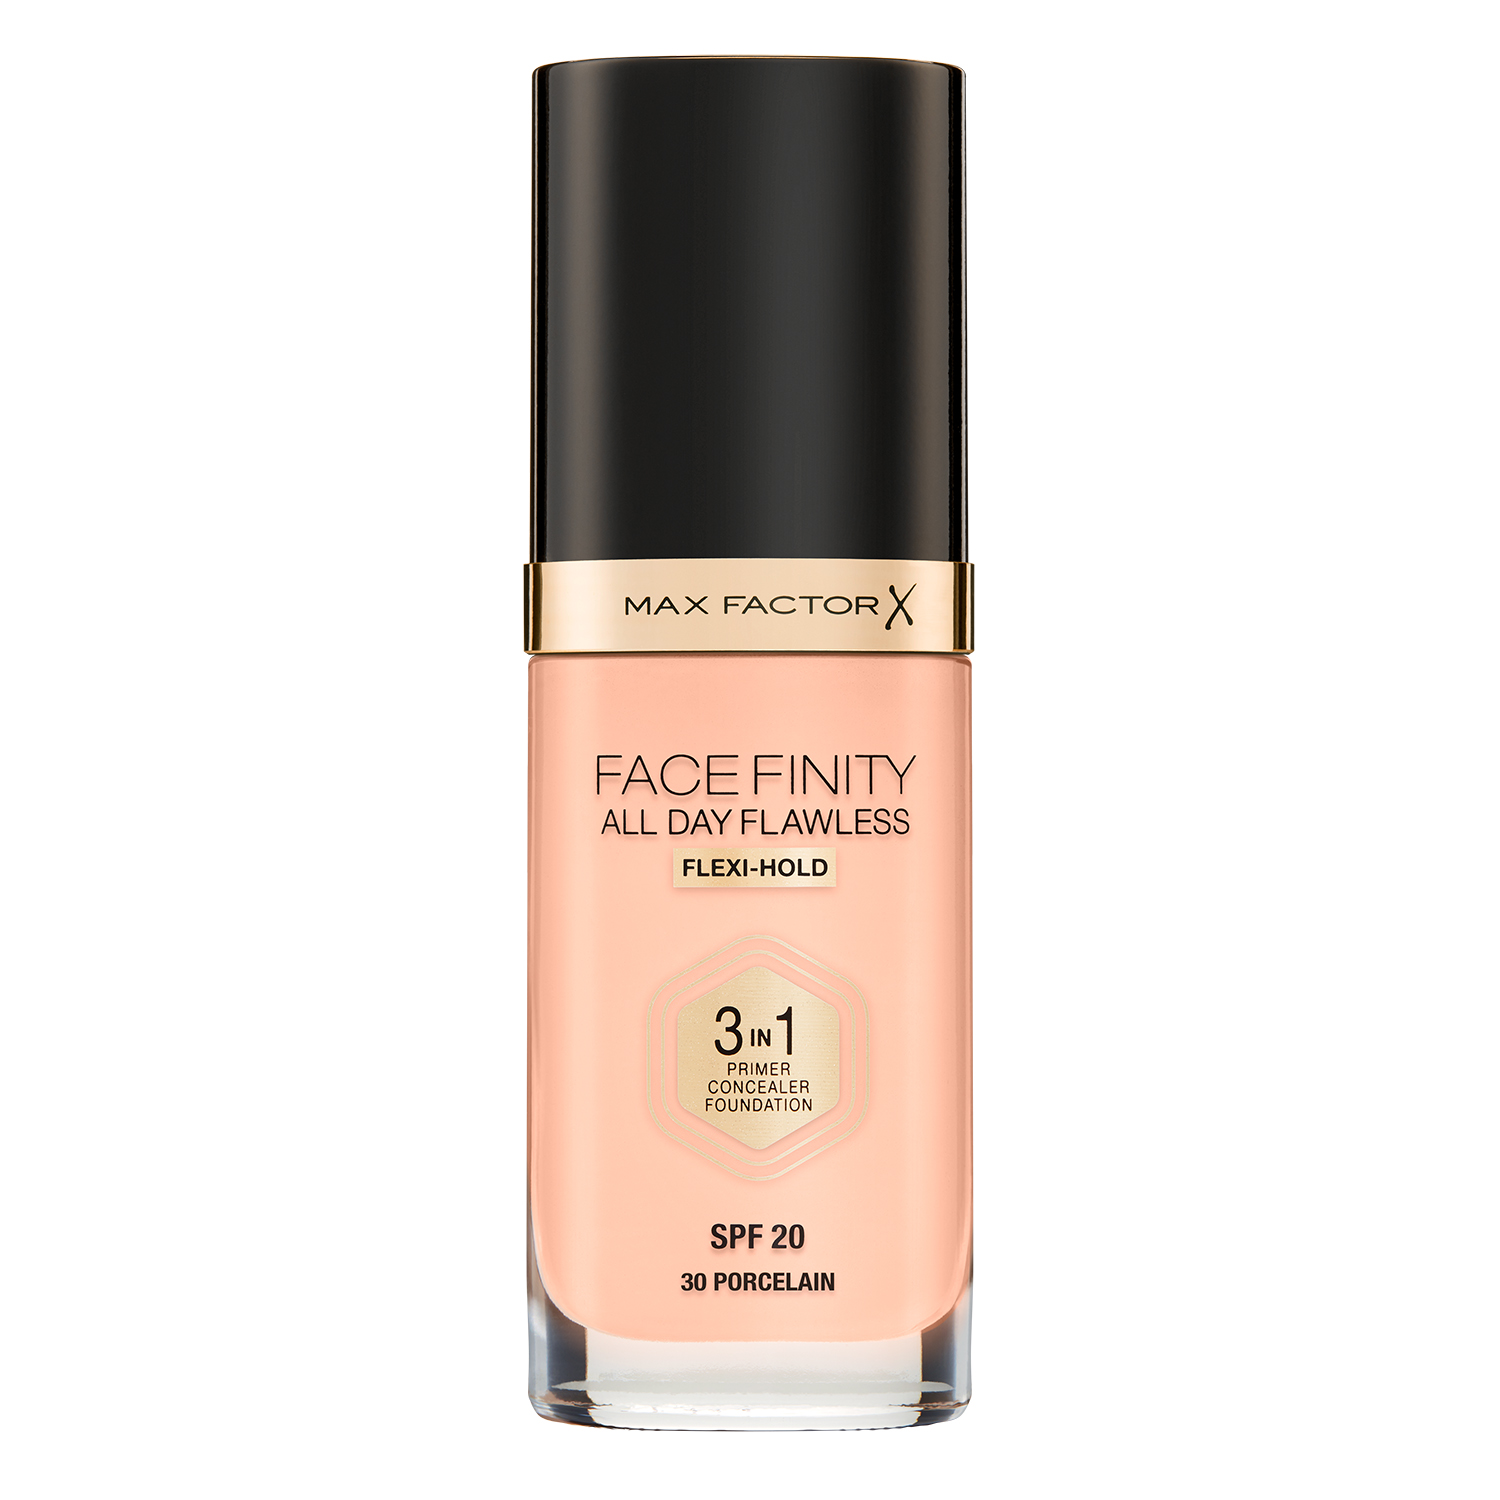 Тональная основа Max Factor Facefinity All Day Flawless 3-in-1, 30 тон procelan